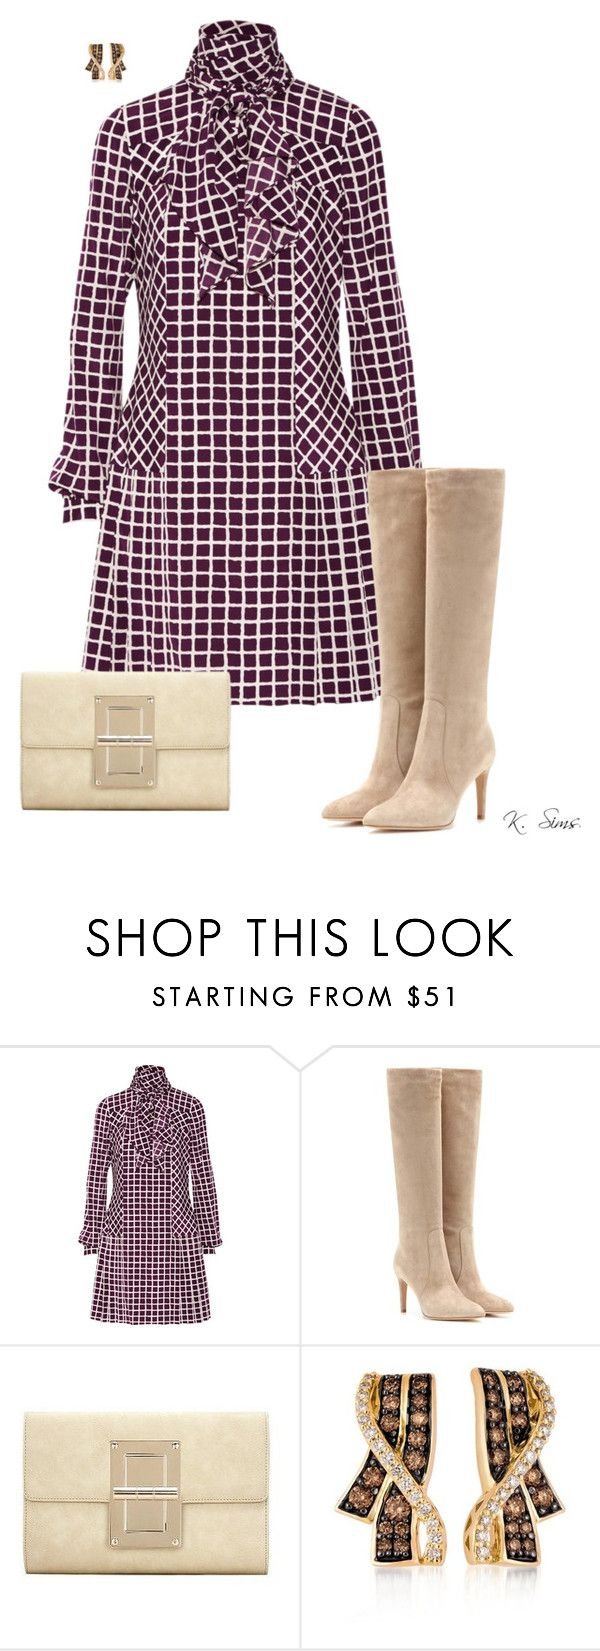 """""""This Dress!"""" by ksims-1 ❤ liked on Polyvore featuring Oscar de la Renta, Gianvito Rossi and LE VIAN"""